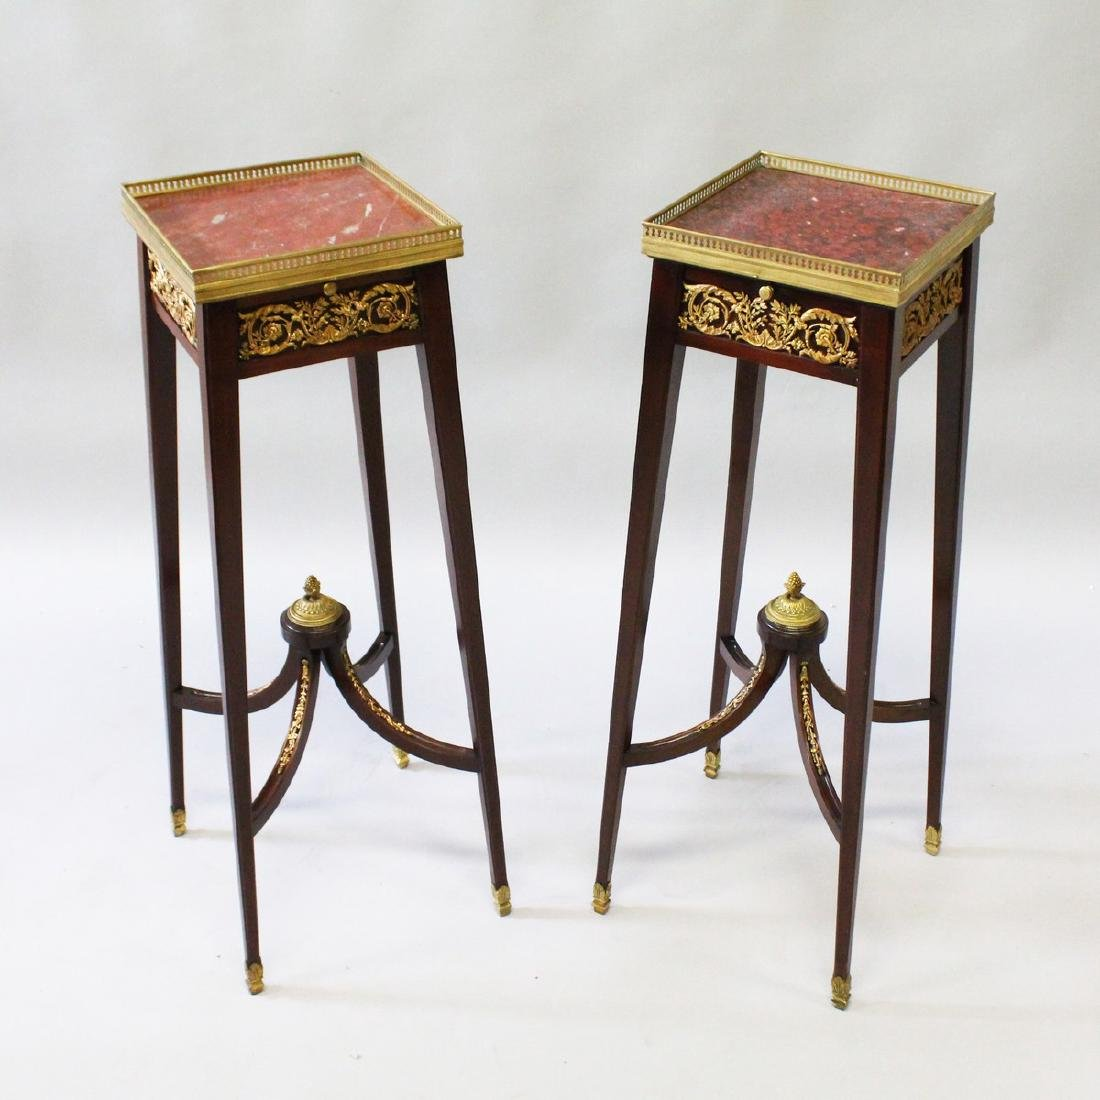 A GOOD PAIR OF 19th CENTURY FRENCH MAHOGANY SQUARE TOP